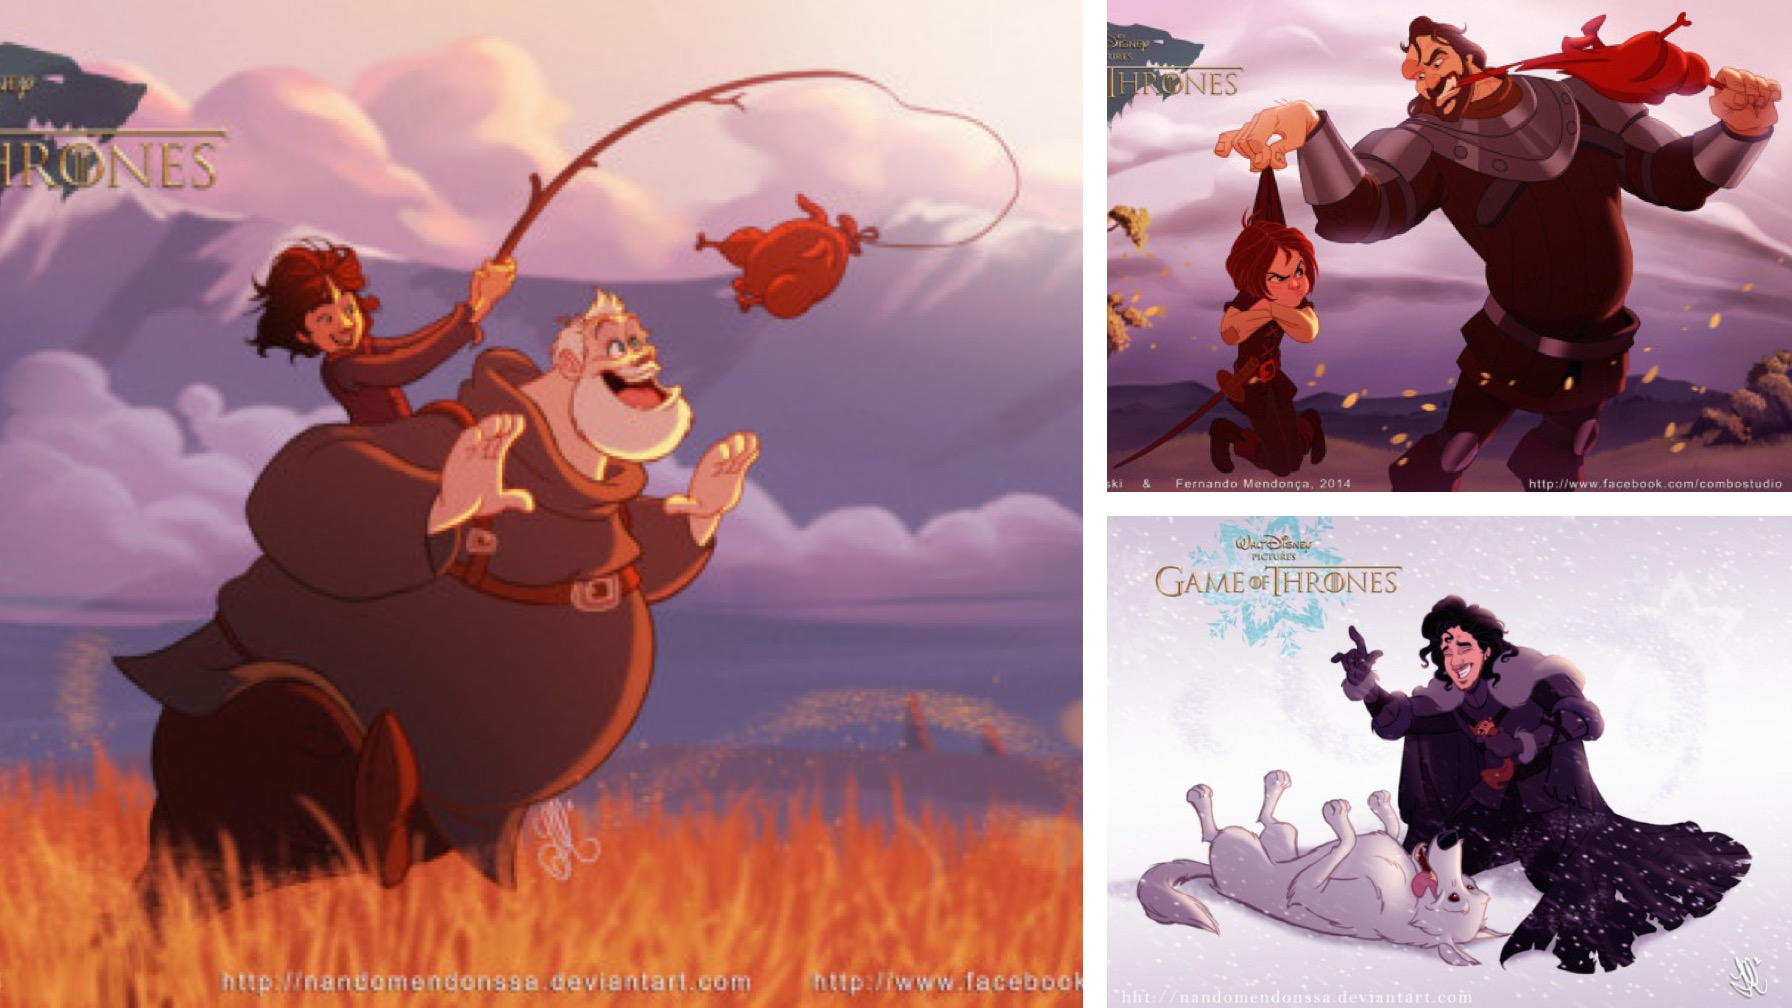 Artists Reimagine 'Game of Thrones' as a Family-Friendly Disney Series